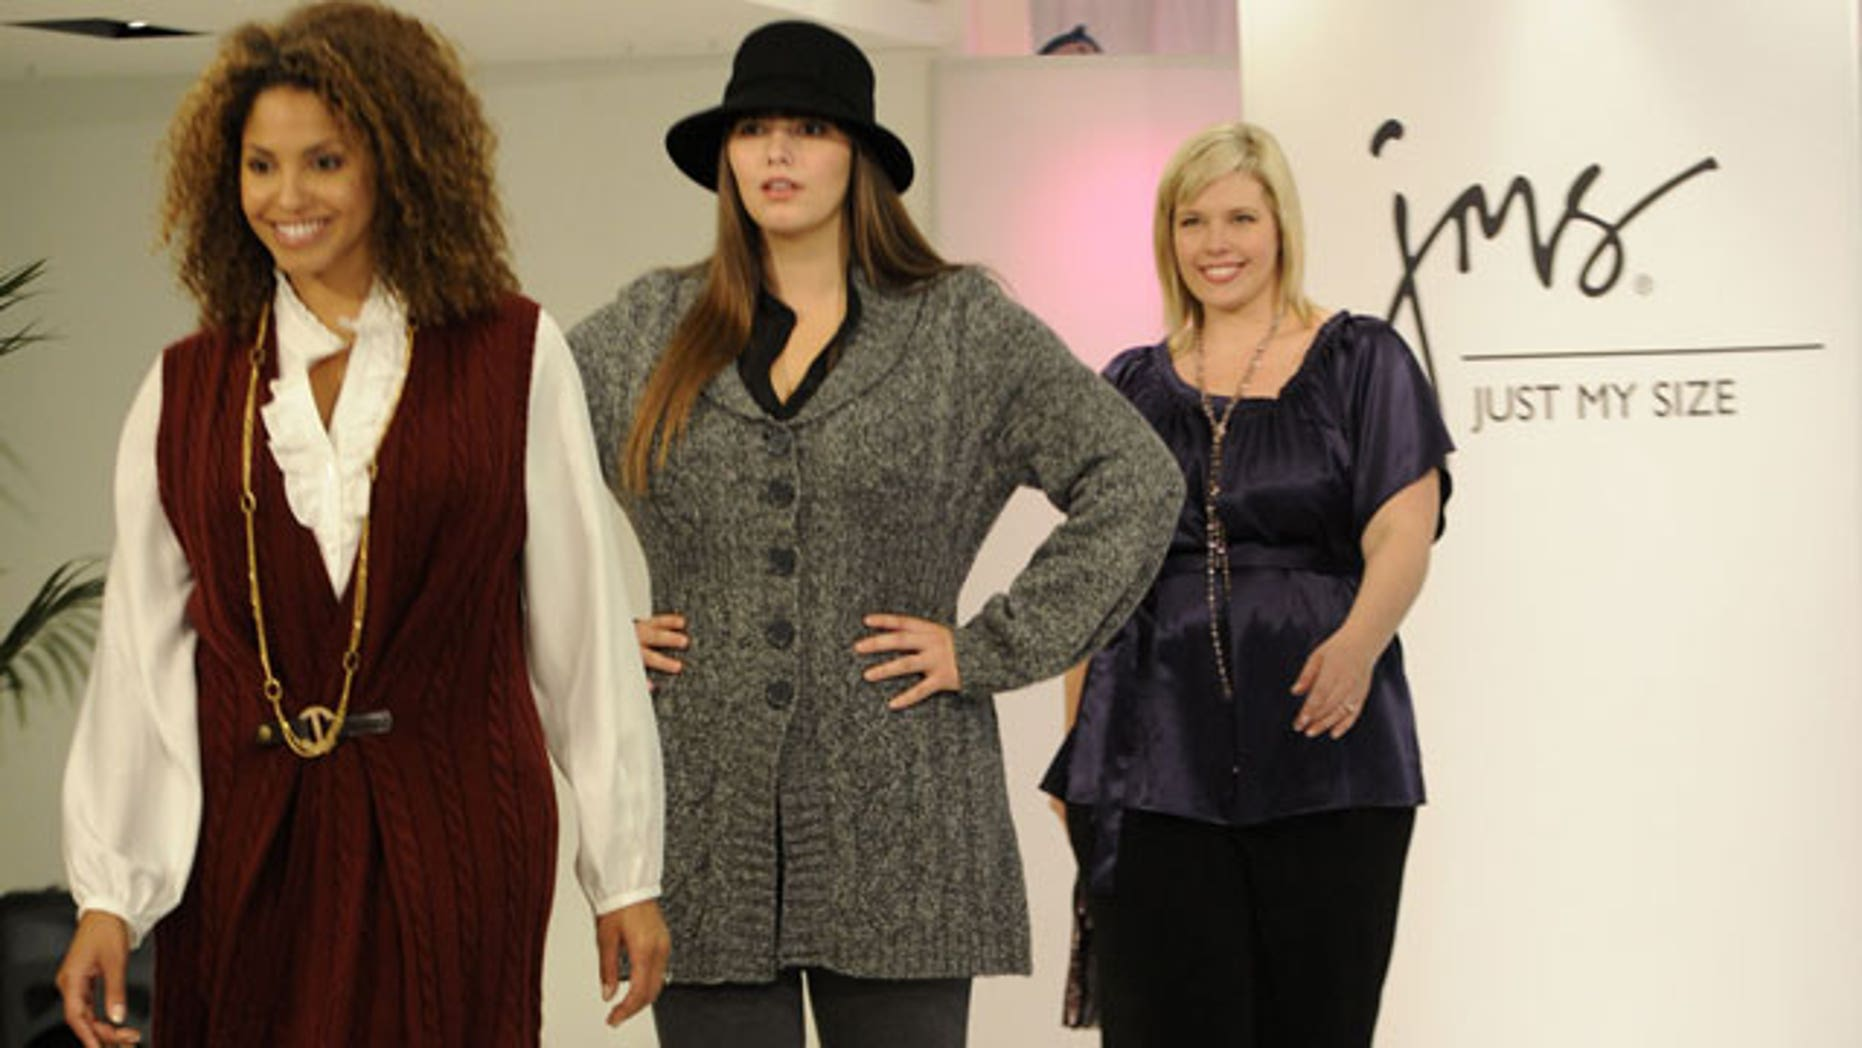 2296e5a4008f5 JMS Just My Size recently launched a new plus size clothing line for retail  giant Walmart at a fashion show in New York today.